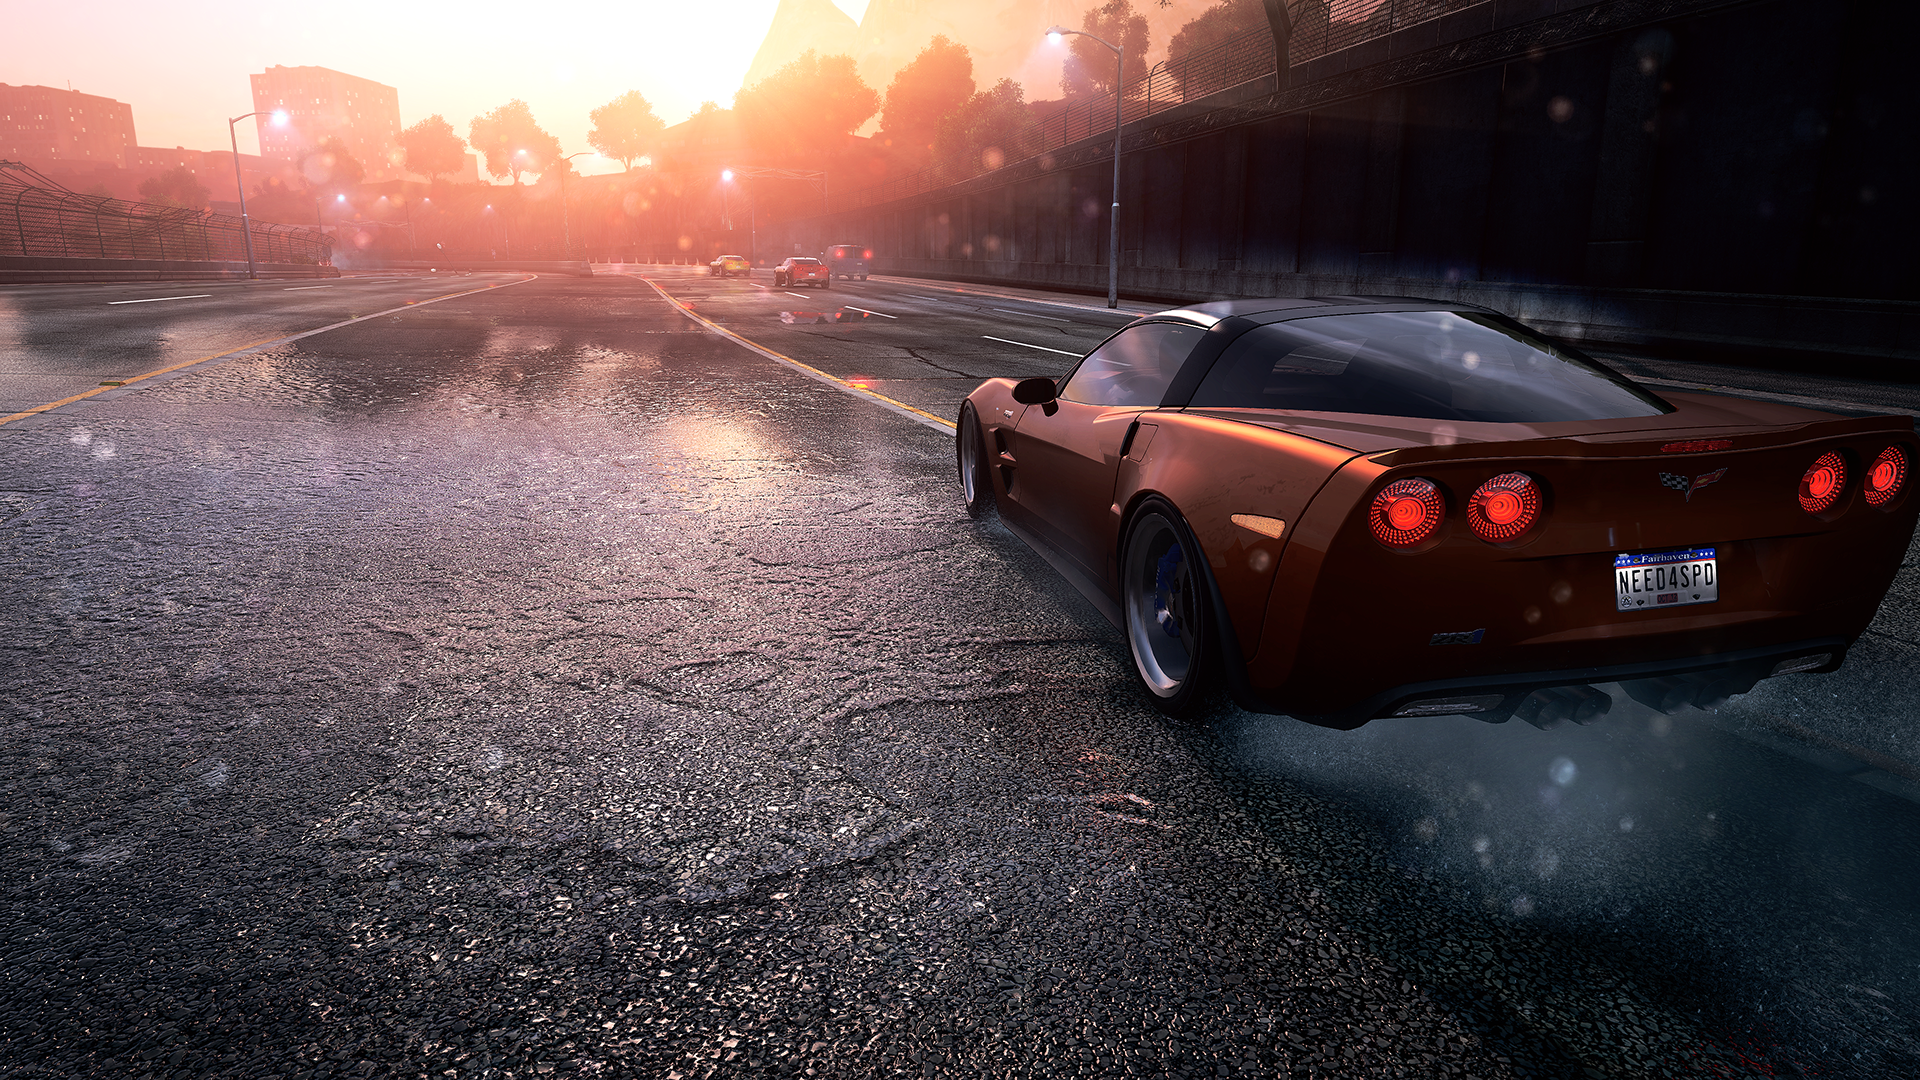 need for speed: most wanted wallpapers, pictures, images